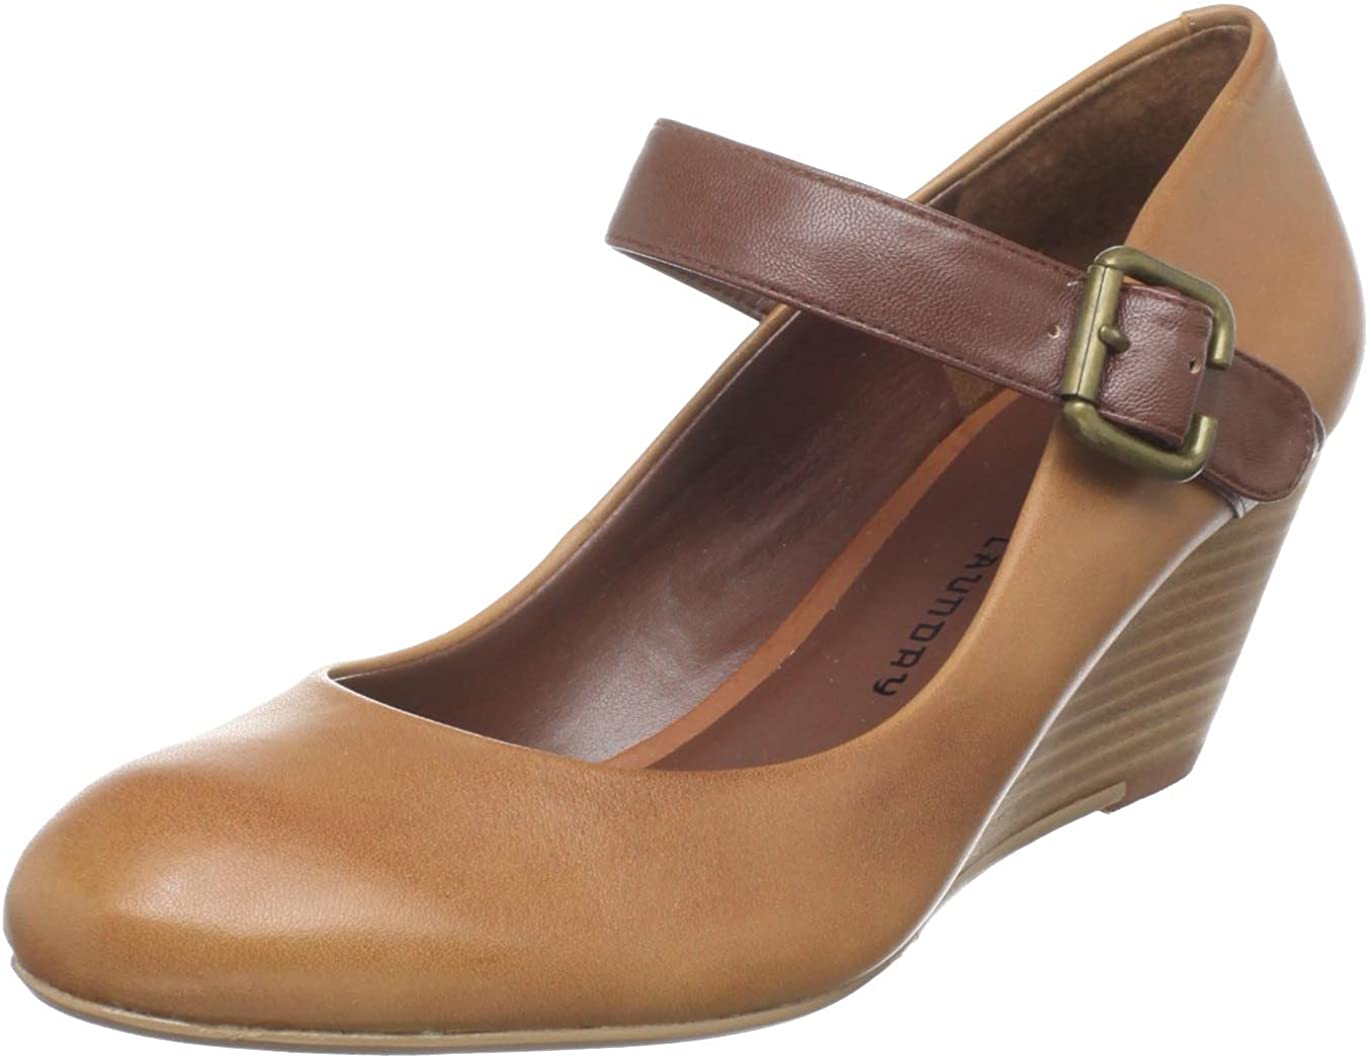 Cash special price Chinese Laundry Women's low-pricing Aja Pump Wedge